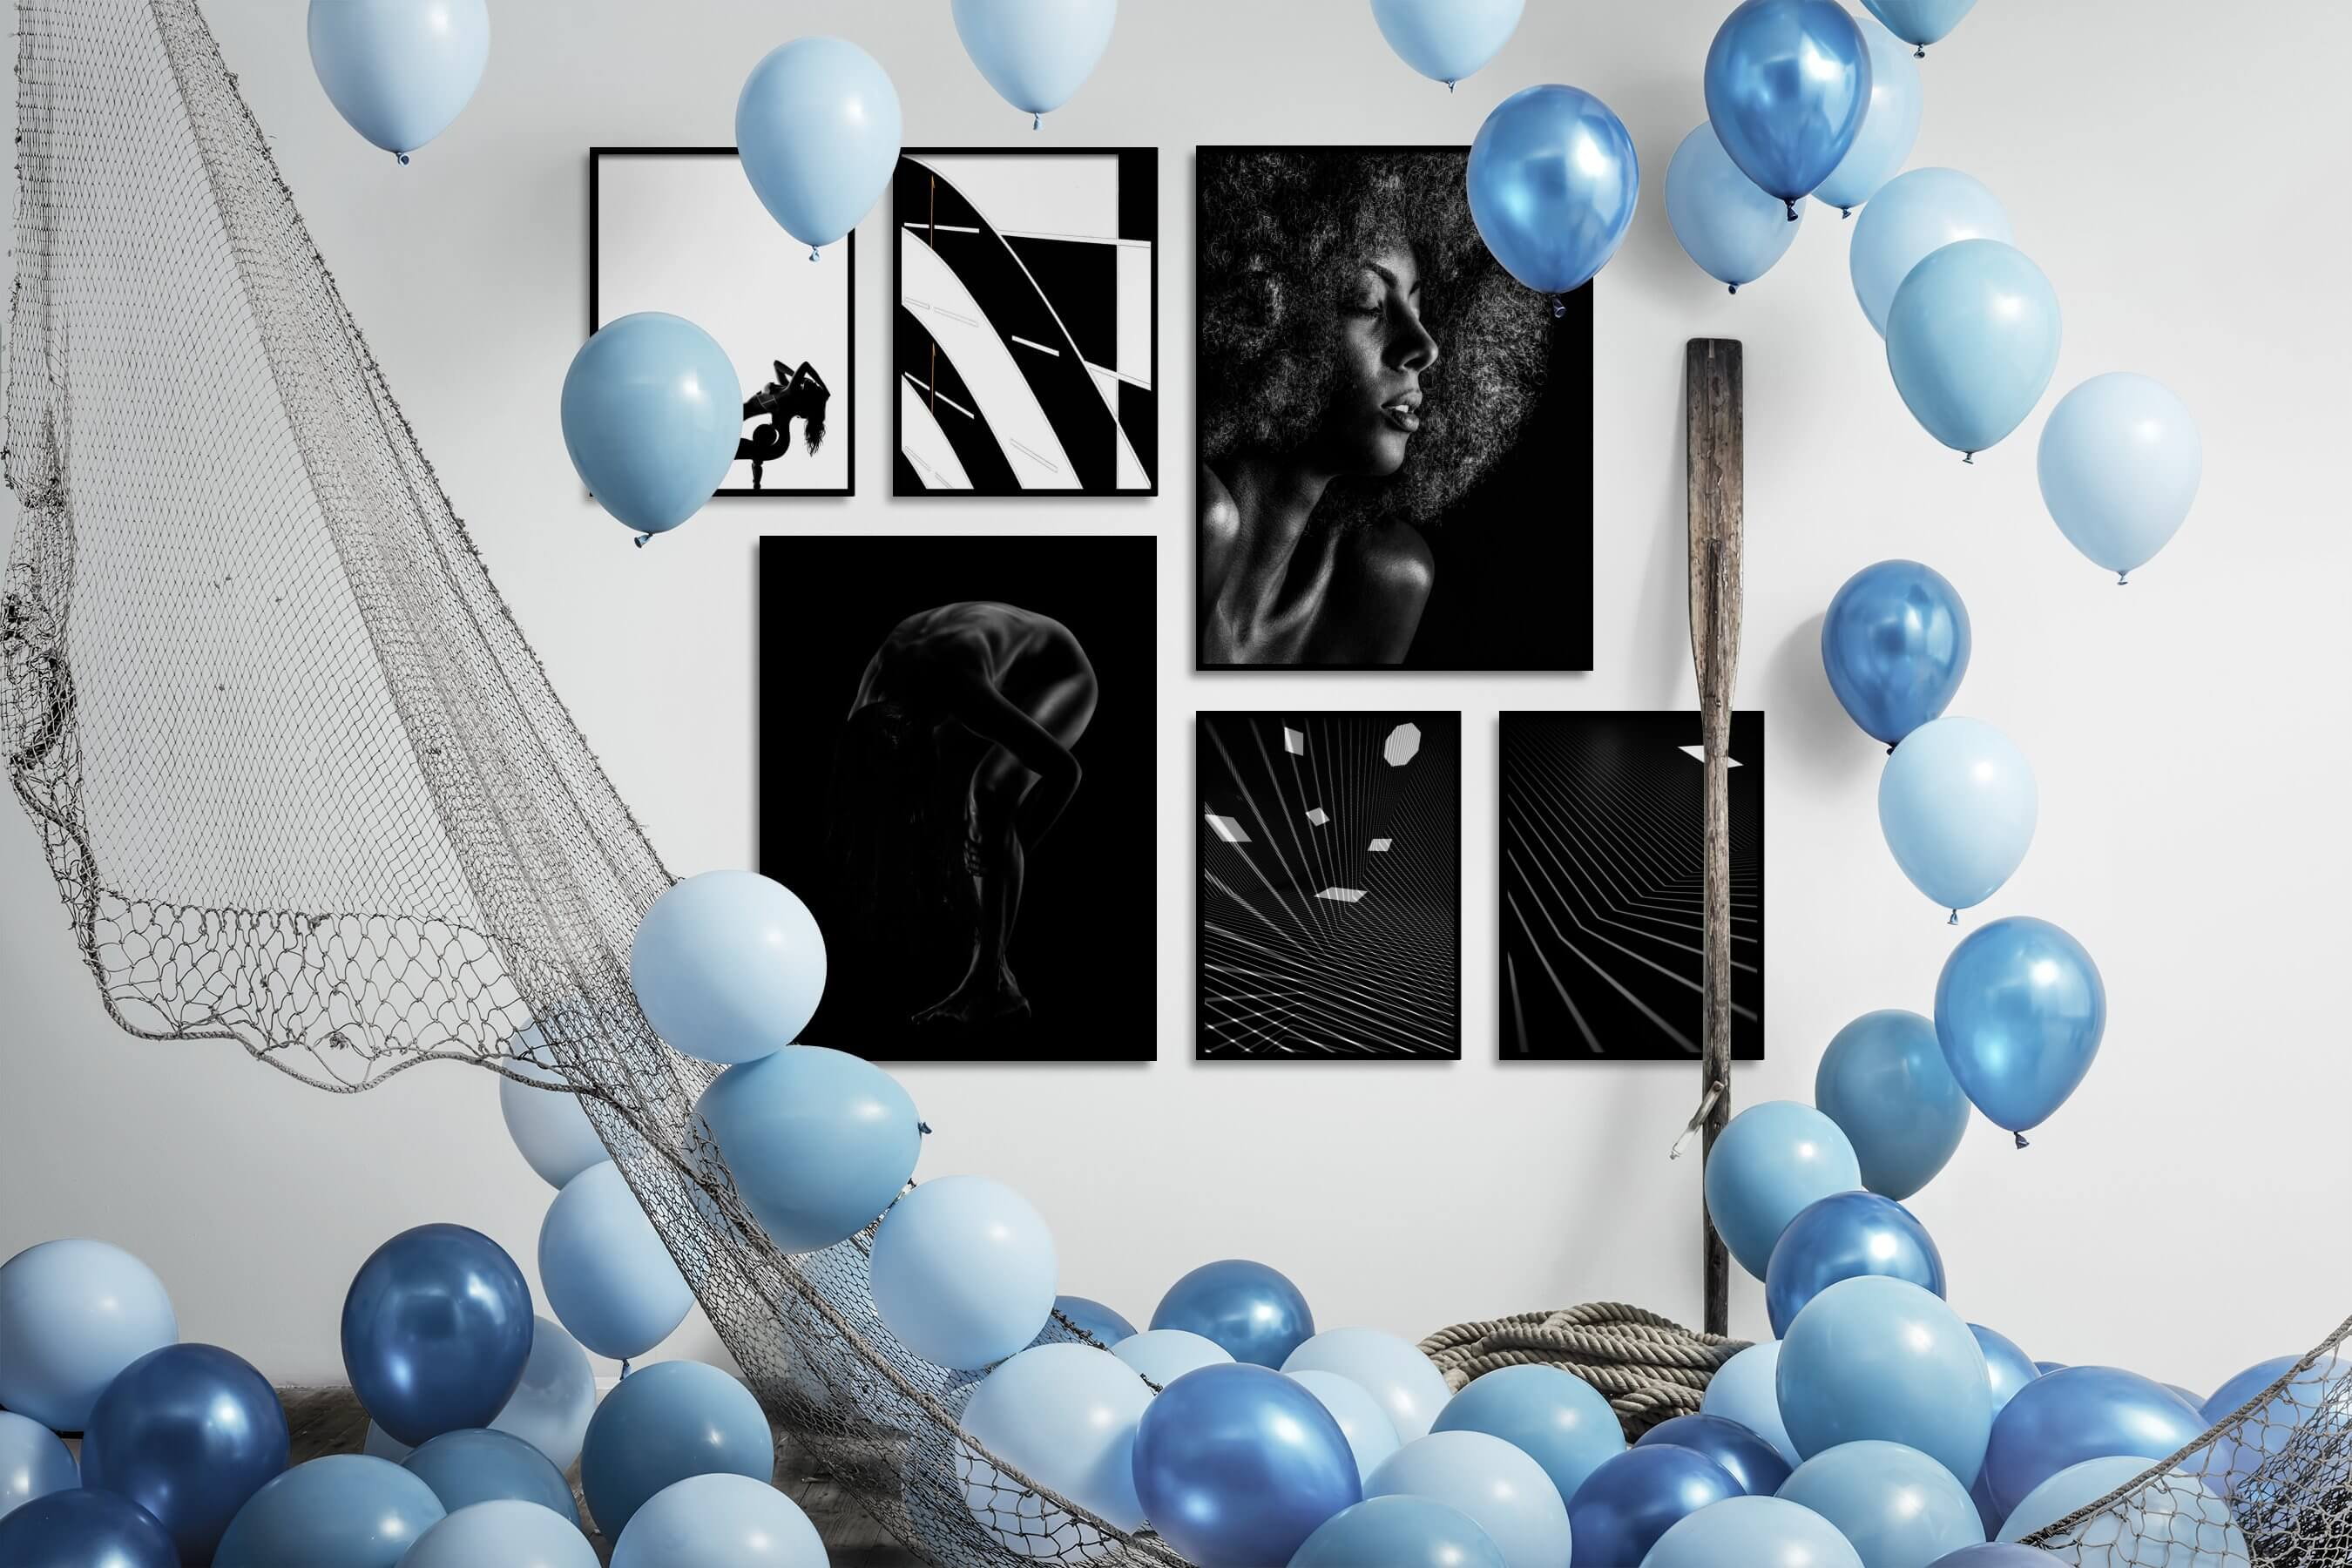 Gallery wall idea with six framed pictures arranged on a wall depicting Fashion & Beauty, Black & White, Bright Tones, For the Minimalist, For the Moderate, Dark Tones, and For the Maximalist